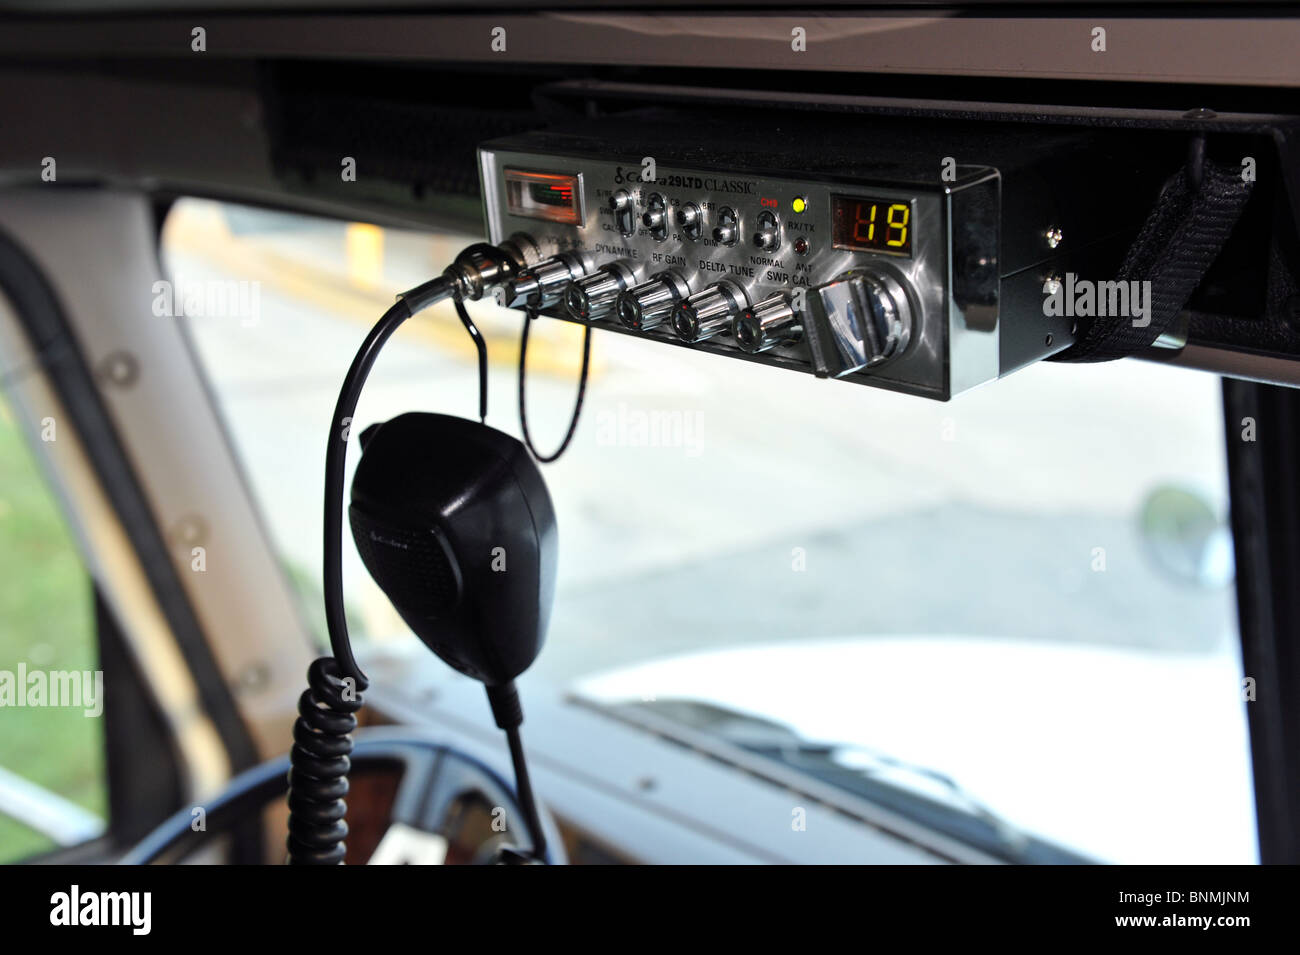 A cb radio in the cab of a semi truck Stock Photo: 30571904 - Alamy